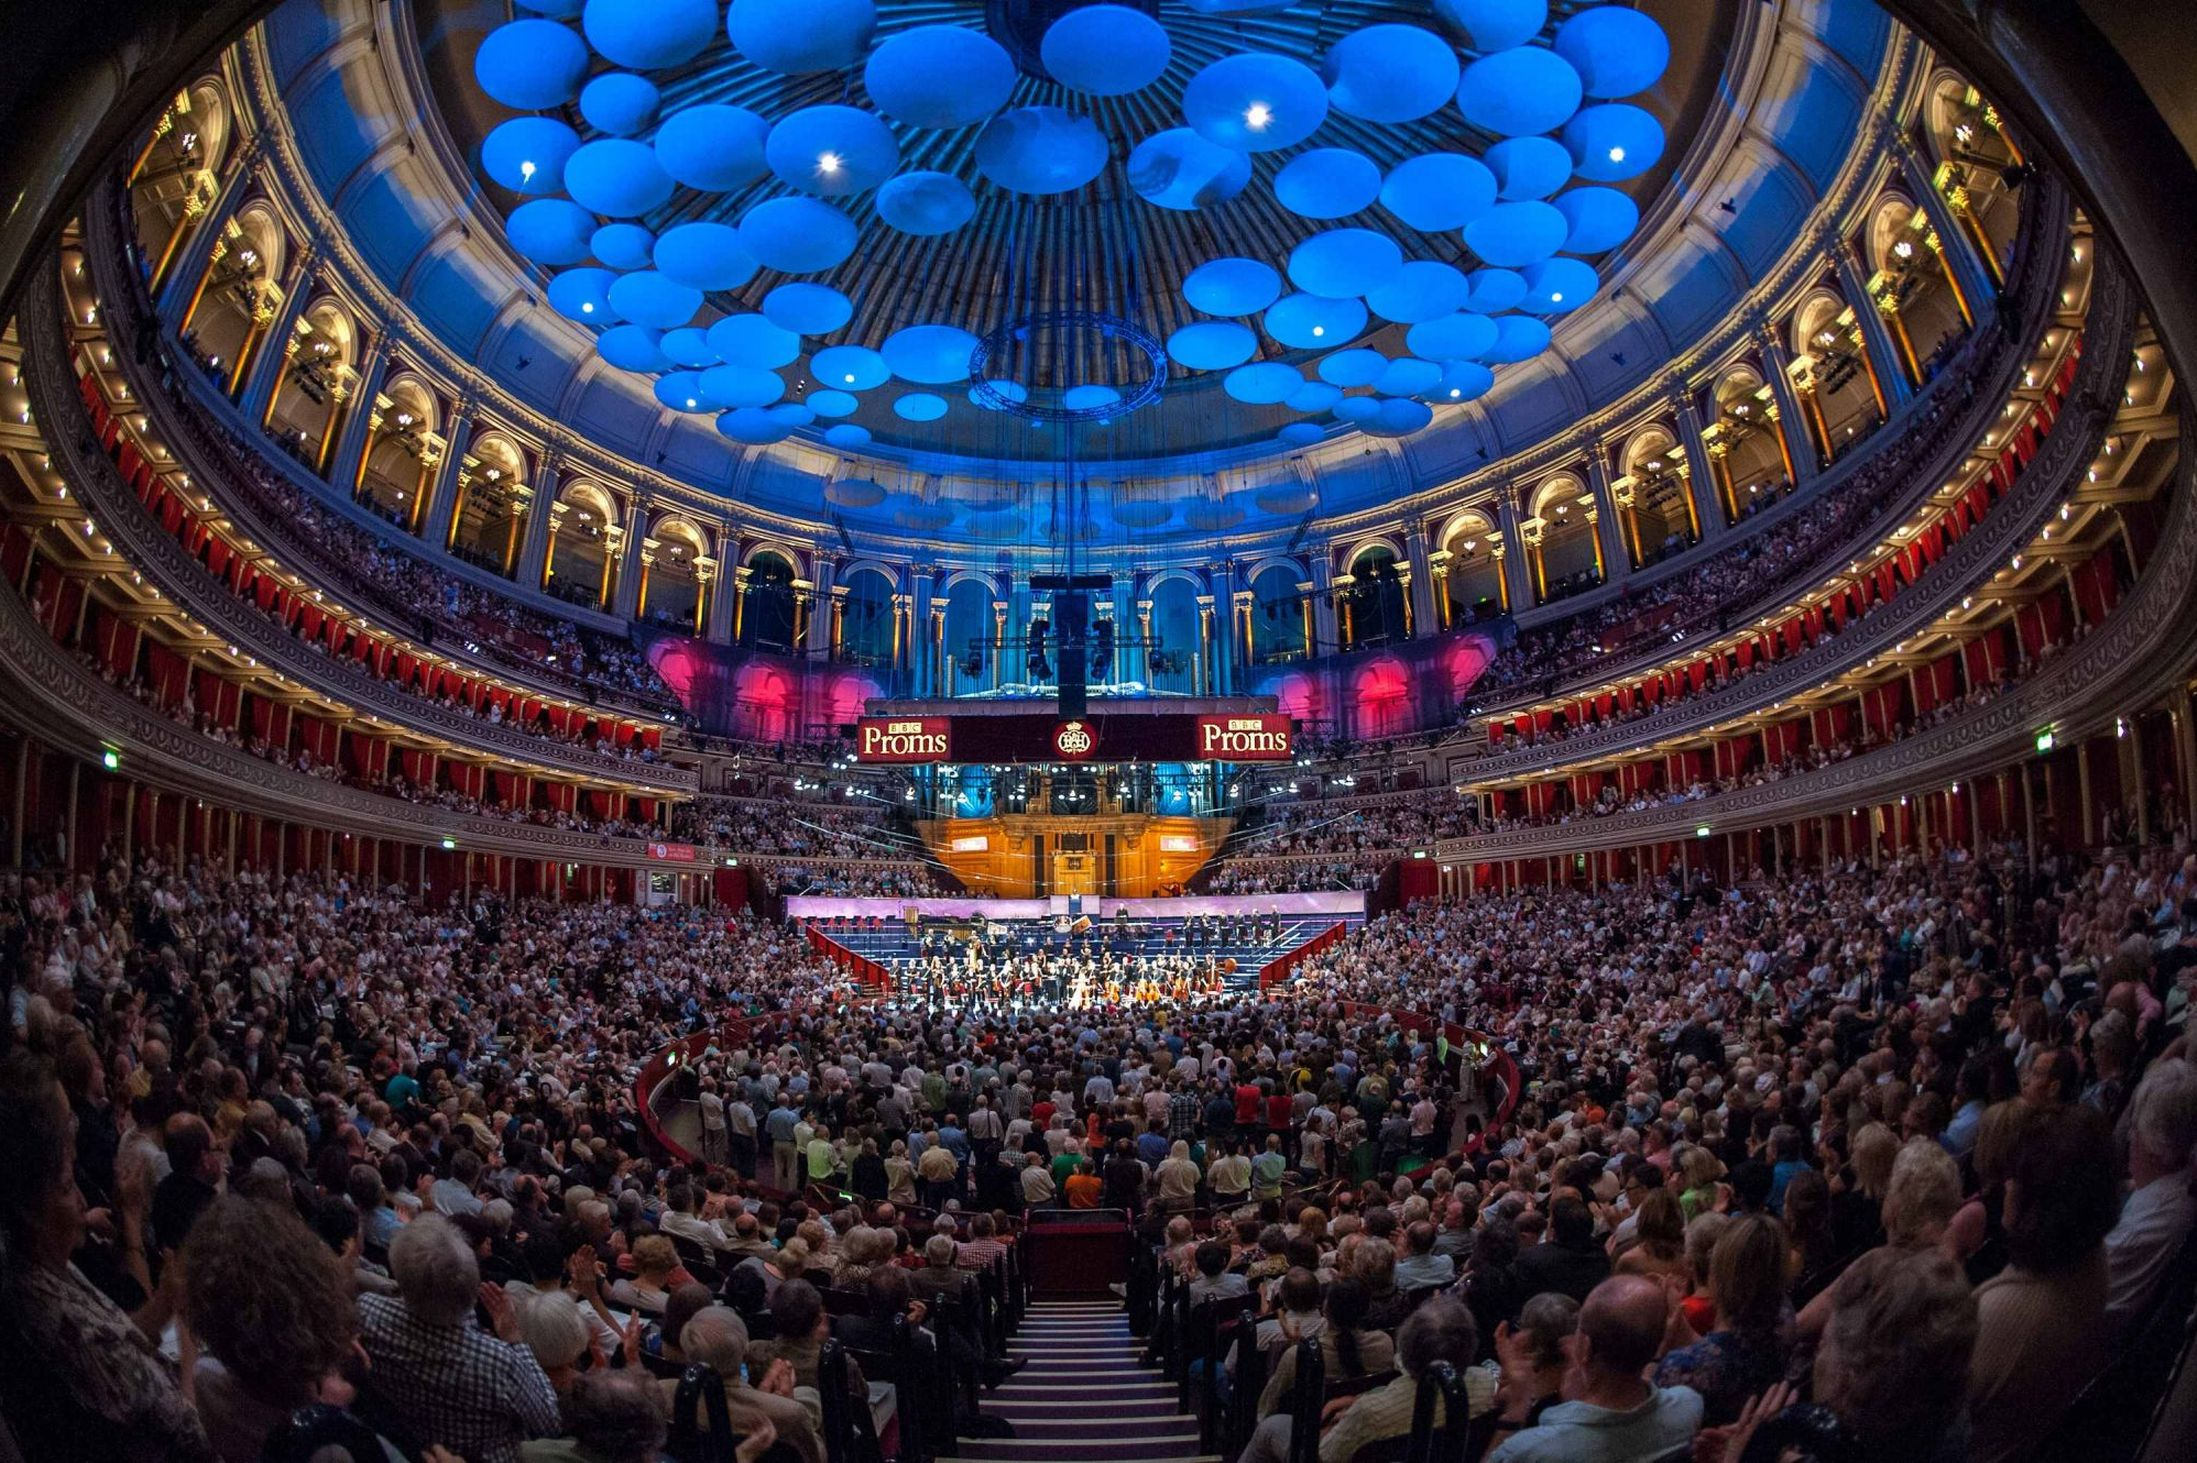 Sincura have a variety of VIP stalls tickets and Boxes for the Last night at the proms